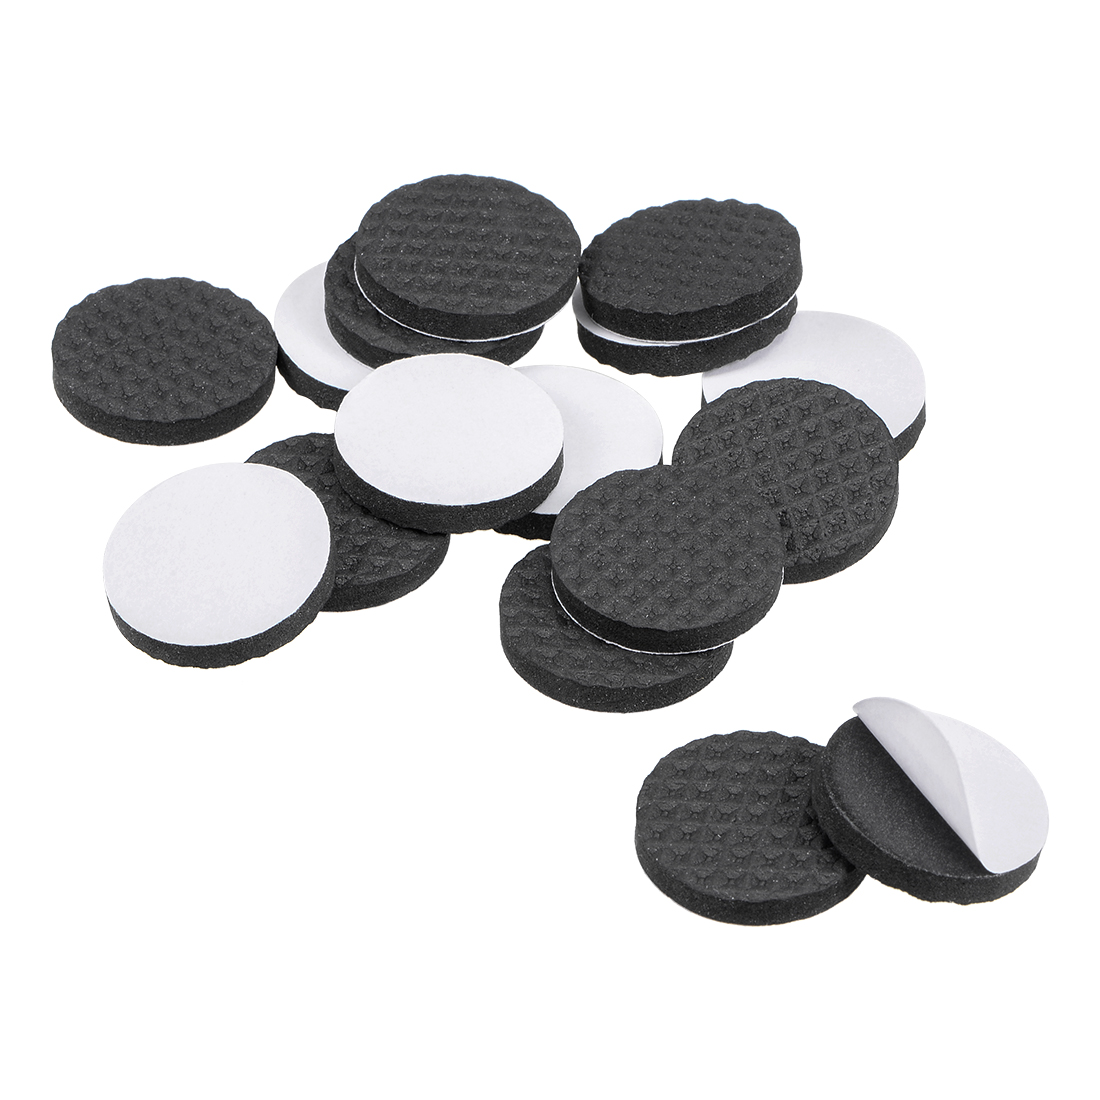 Furniture Pads Adhesive Rubber Pads 25mm Dia 4mm Thick Round Black 16Pcs